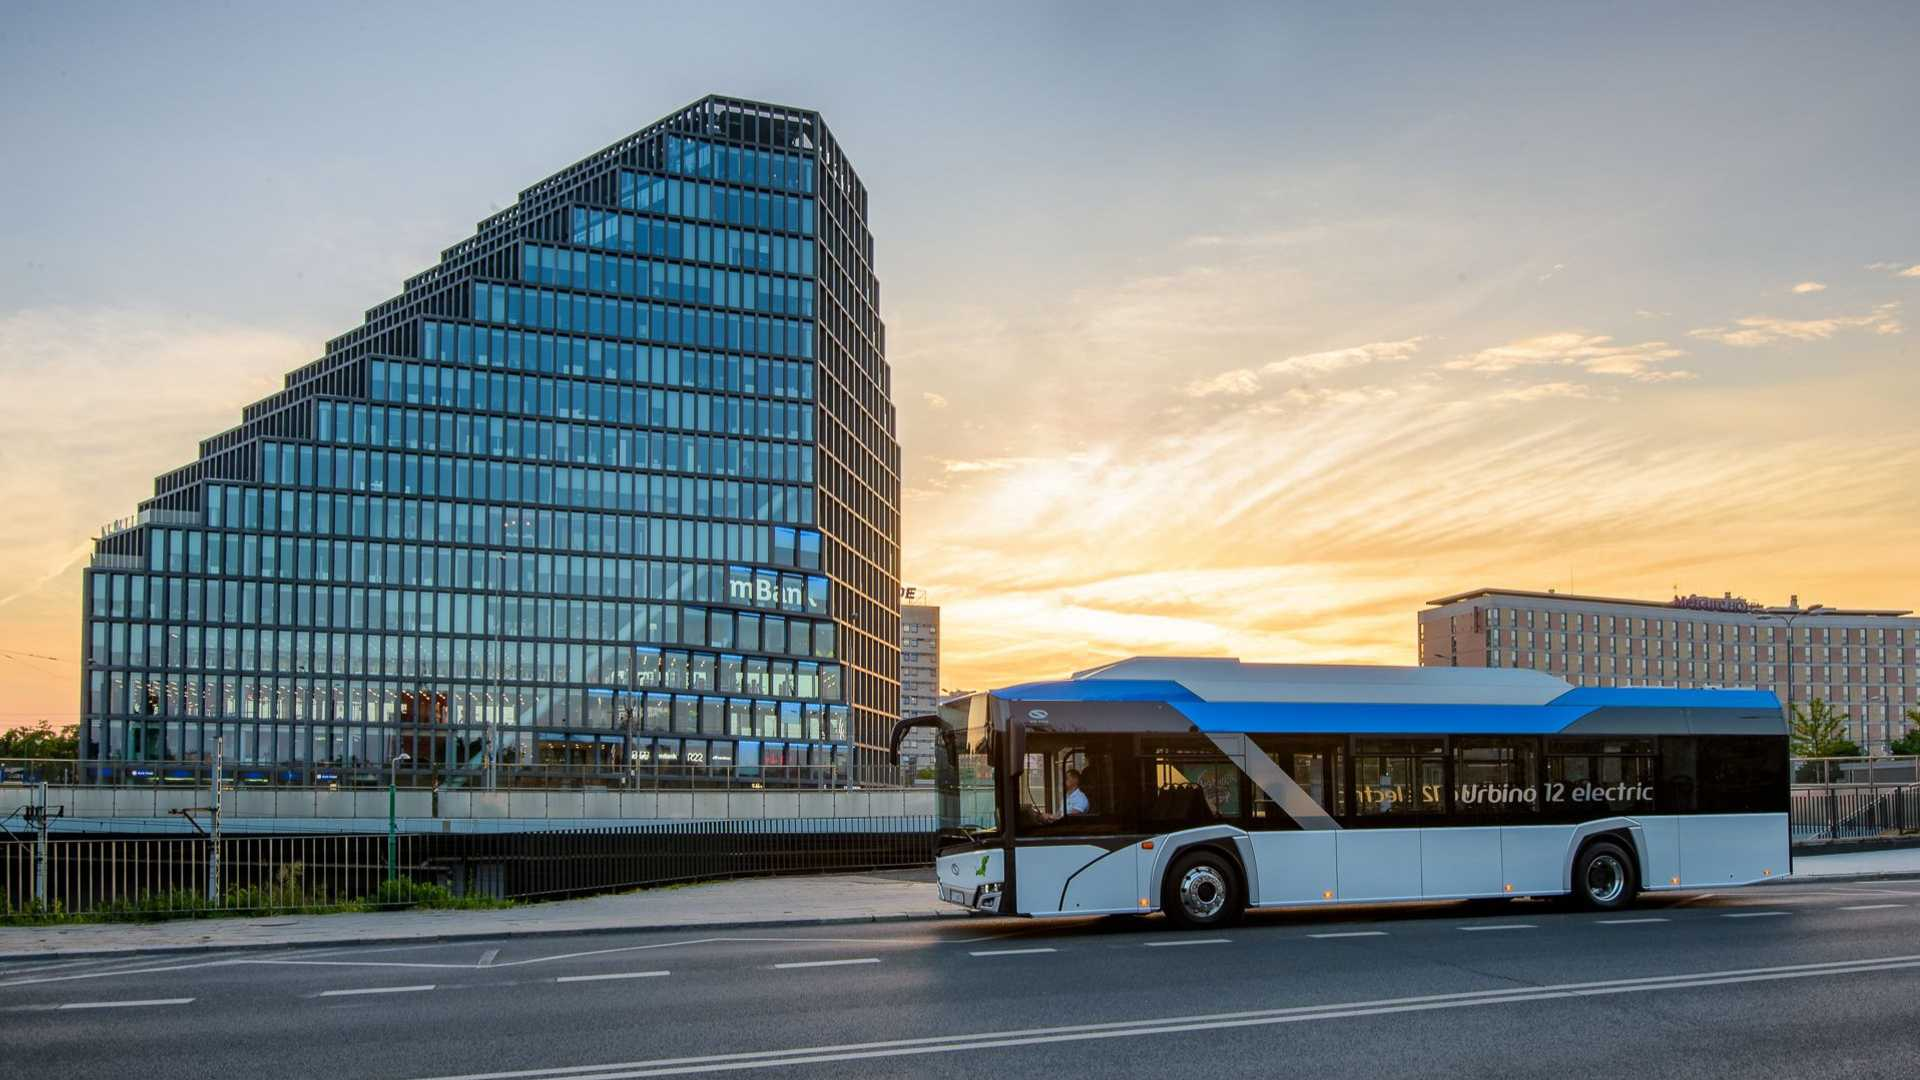 Solaris Takes 25% Share Of European EV Bus Market This Year